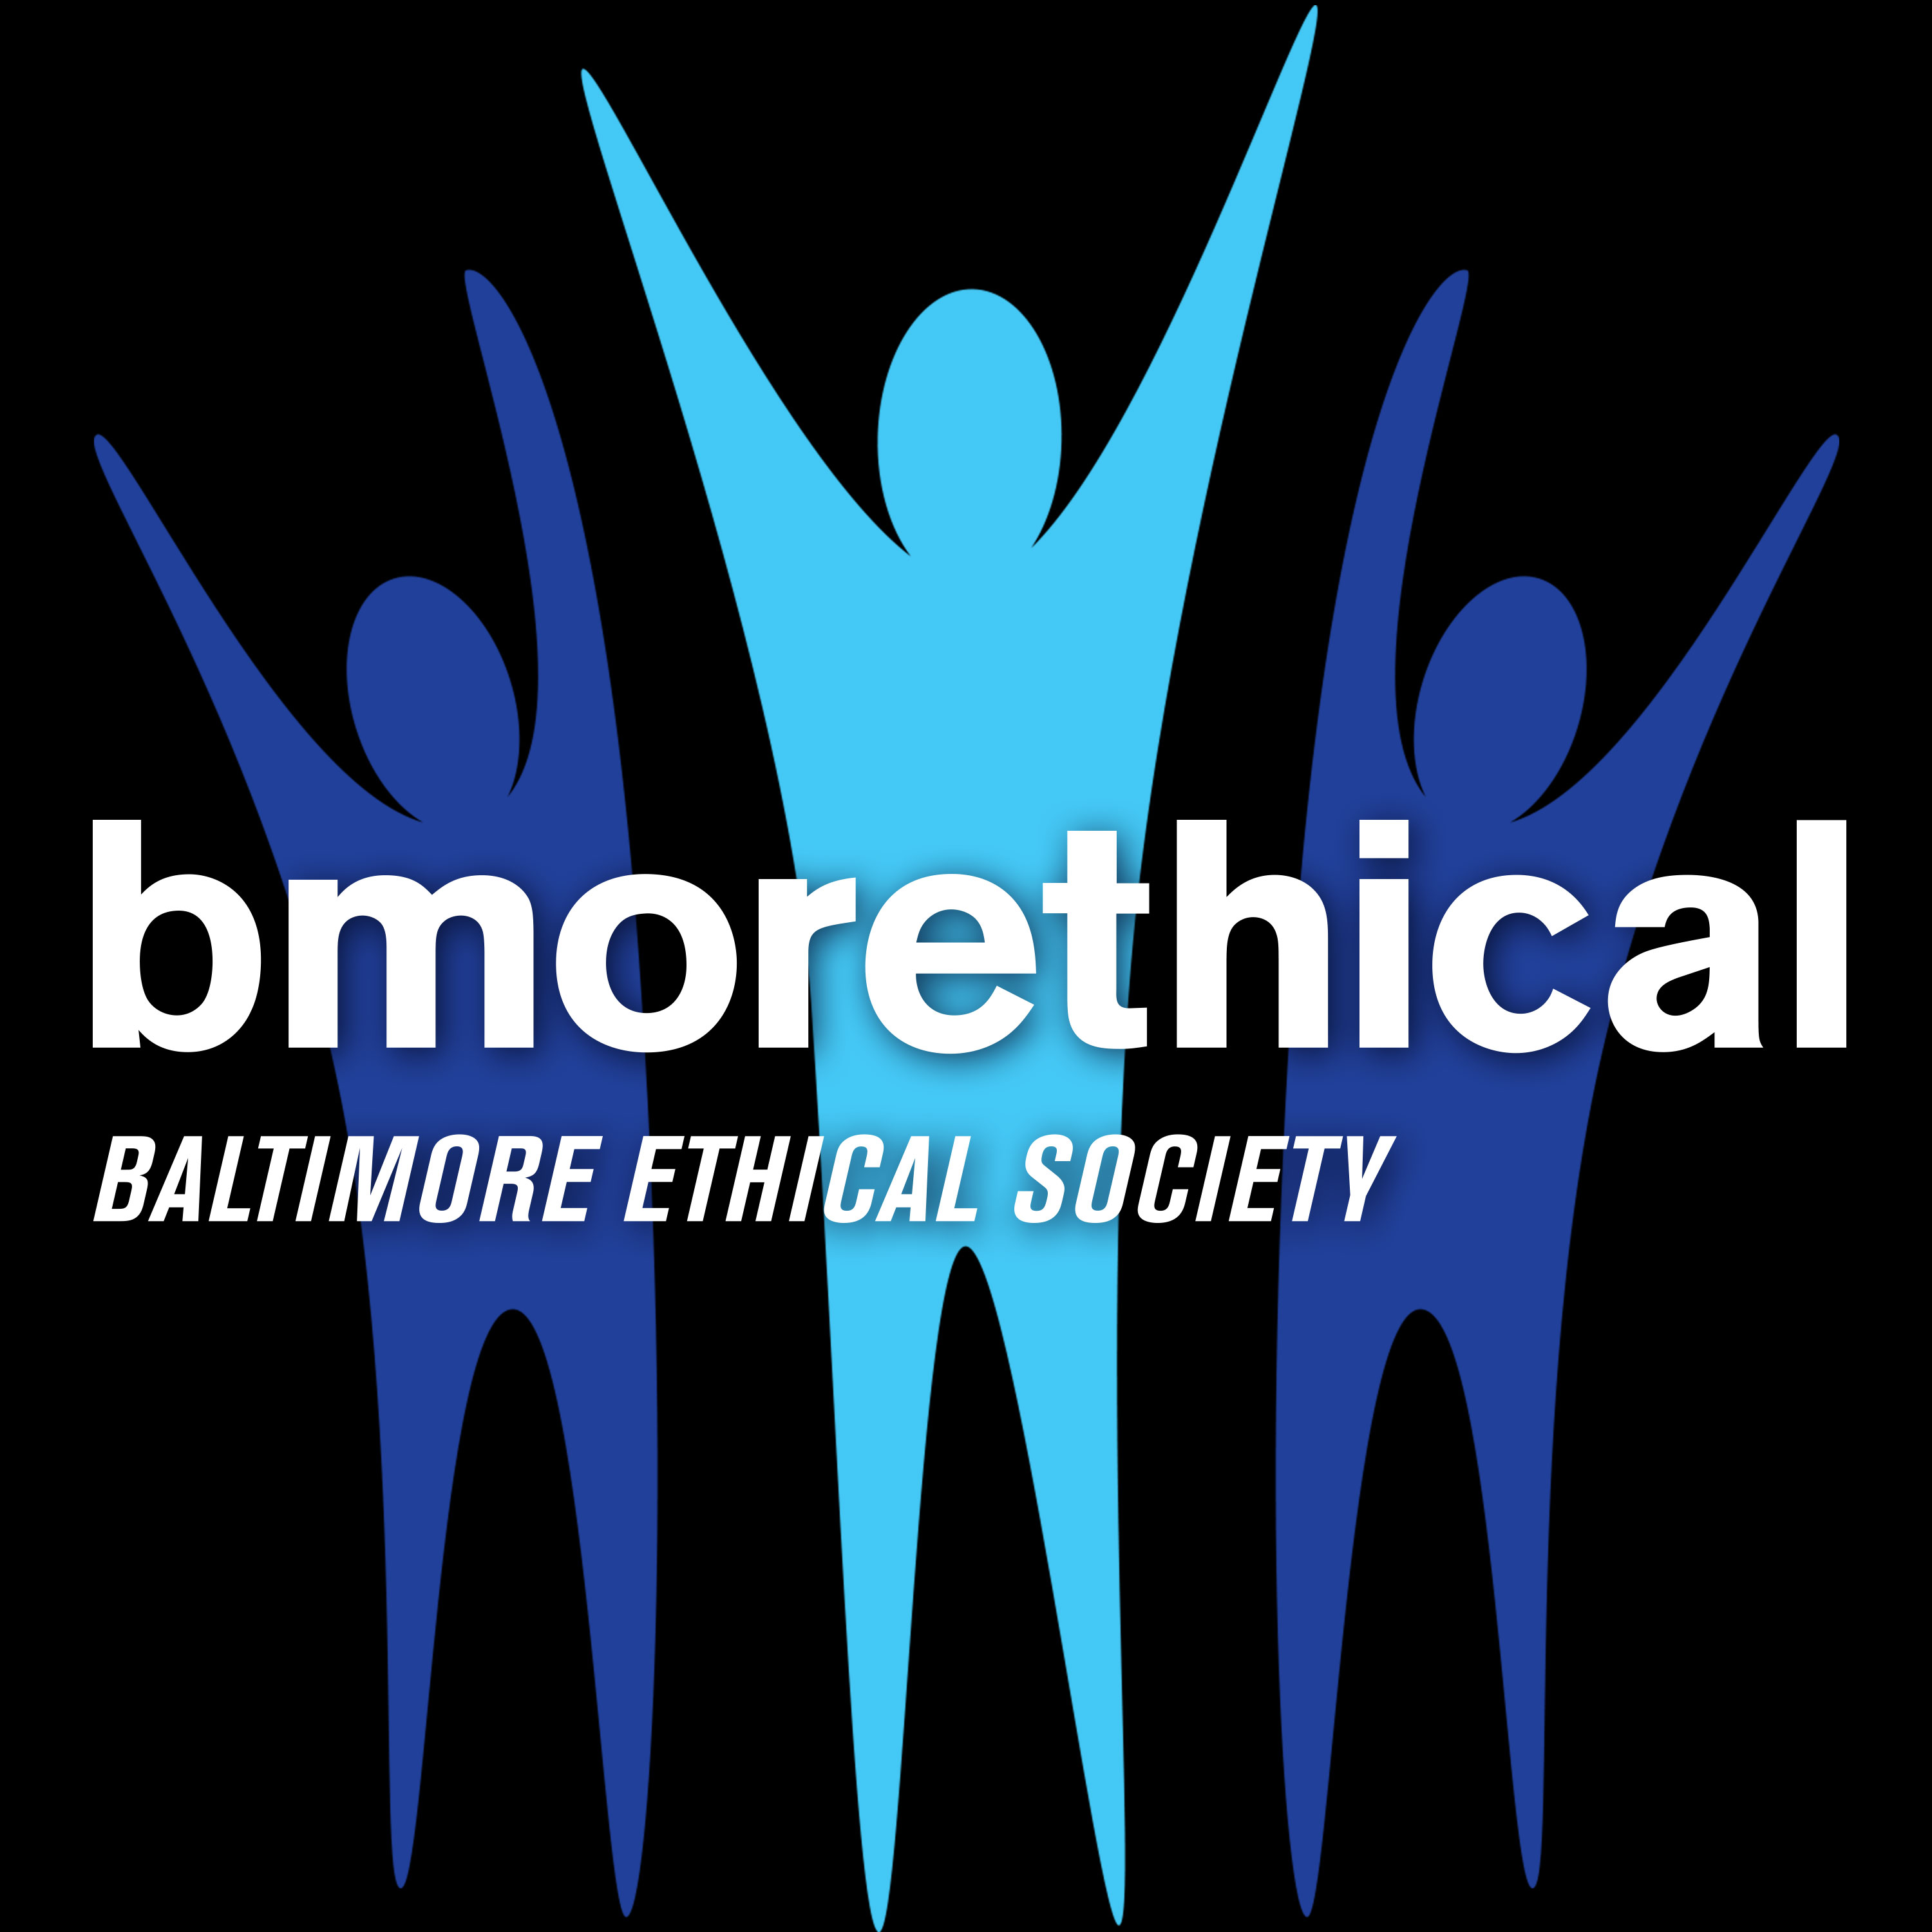 Baltimore Ethical Society